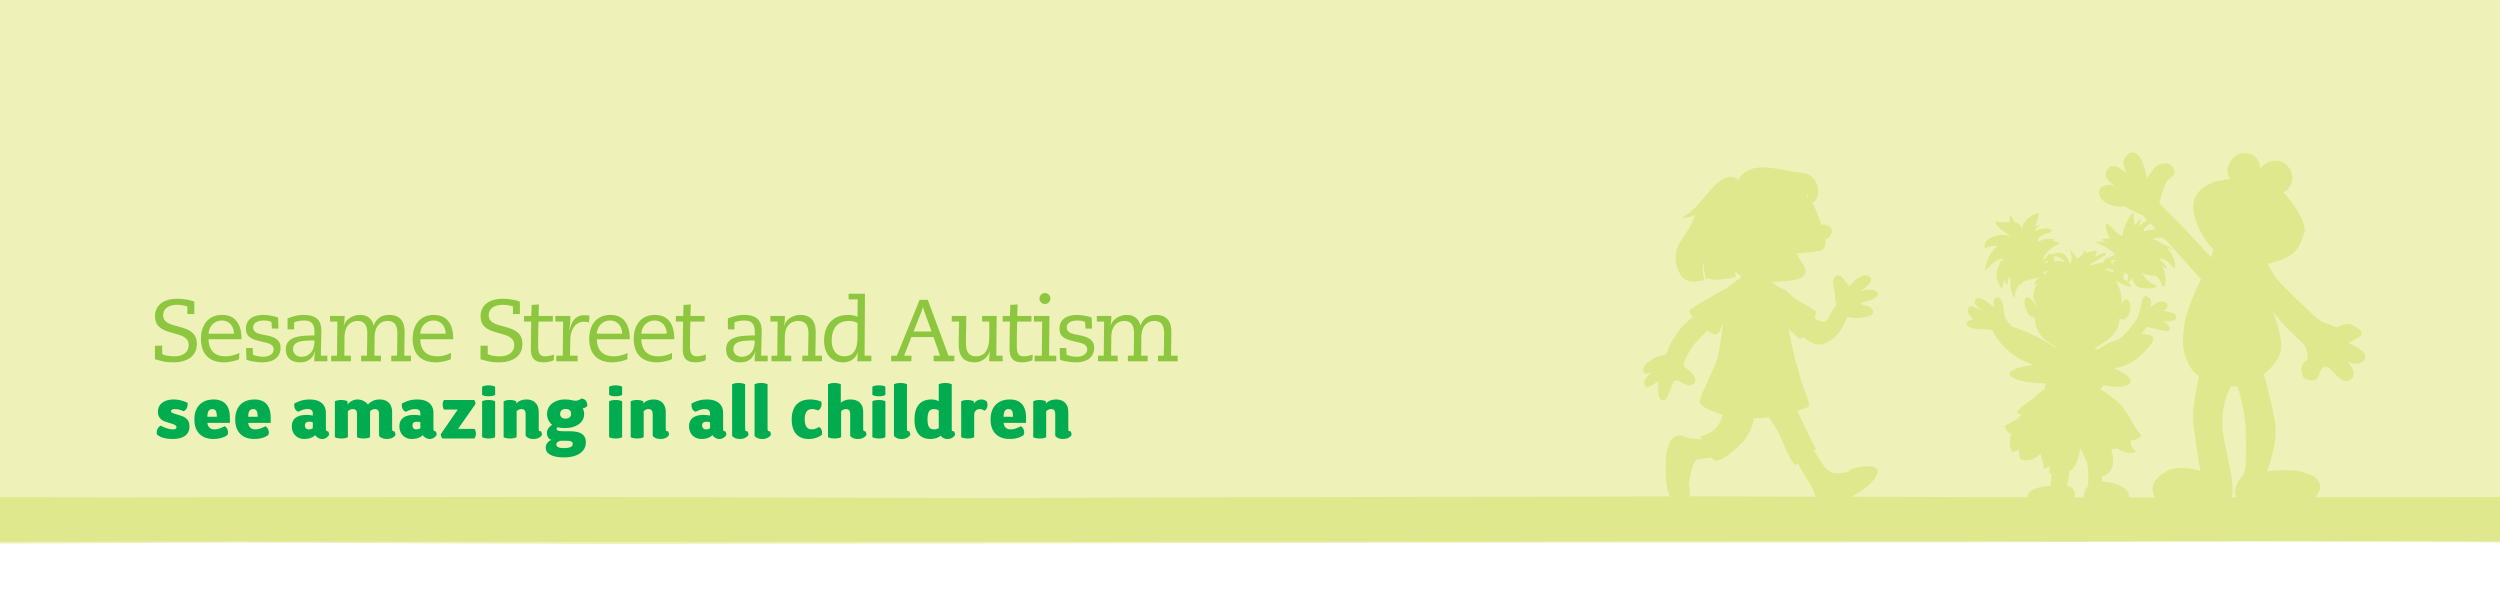 <em>Sesame Street</em> and Autism: see amazing in all children